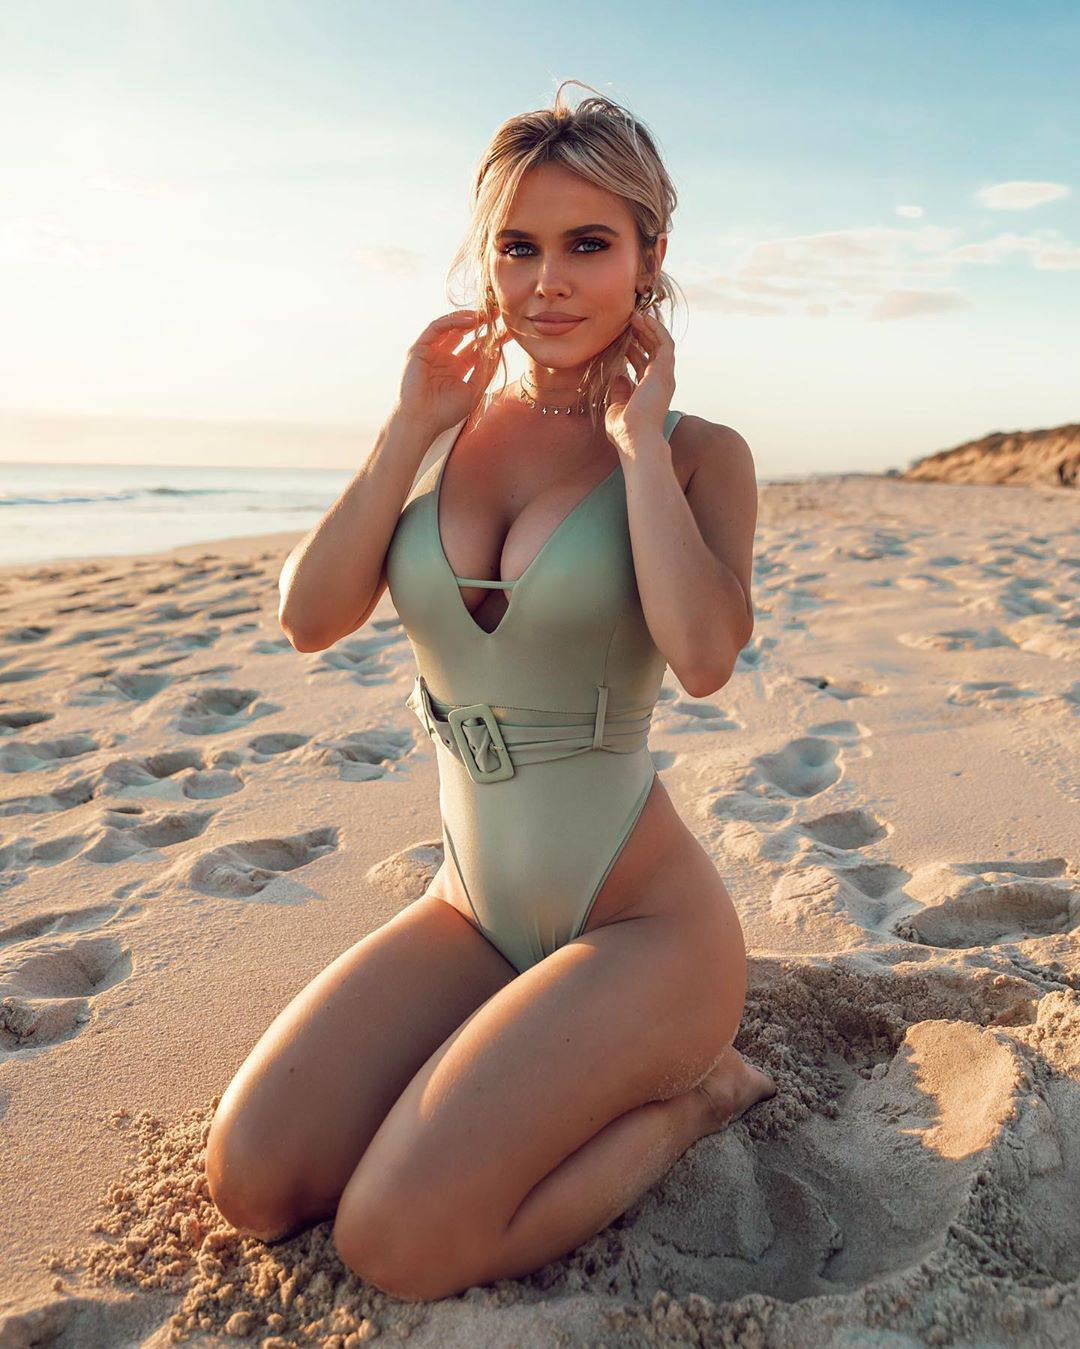 Hilde Osland Photoshoot in Revealing Swimsuit